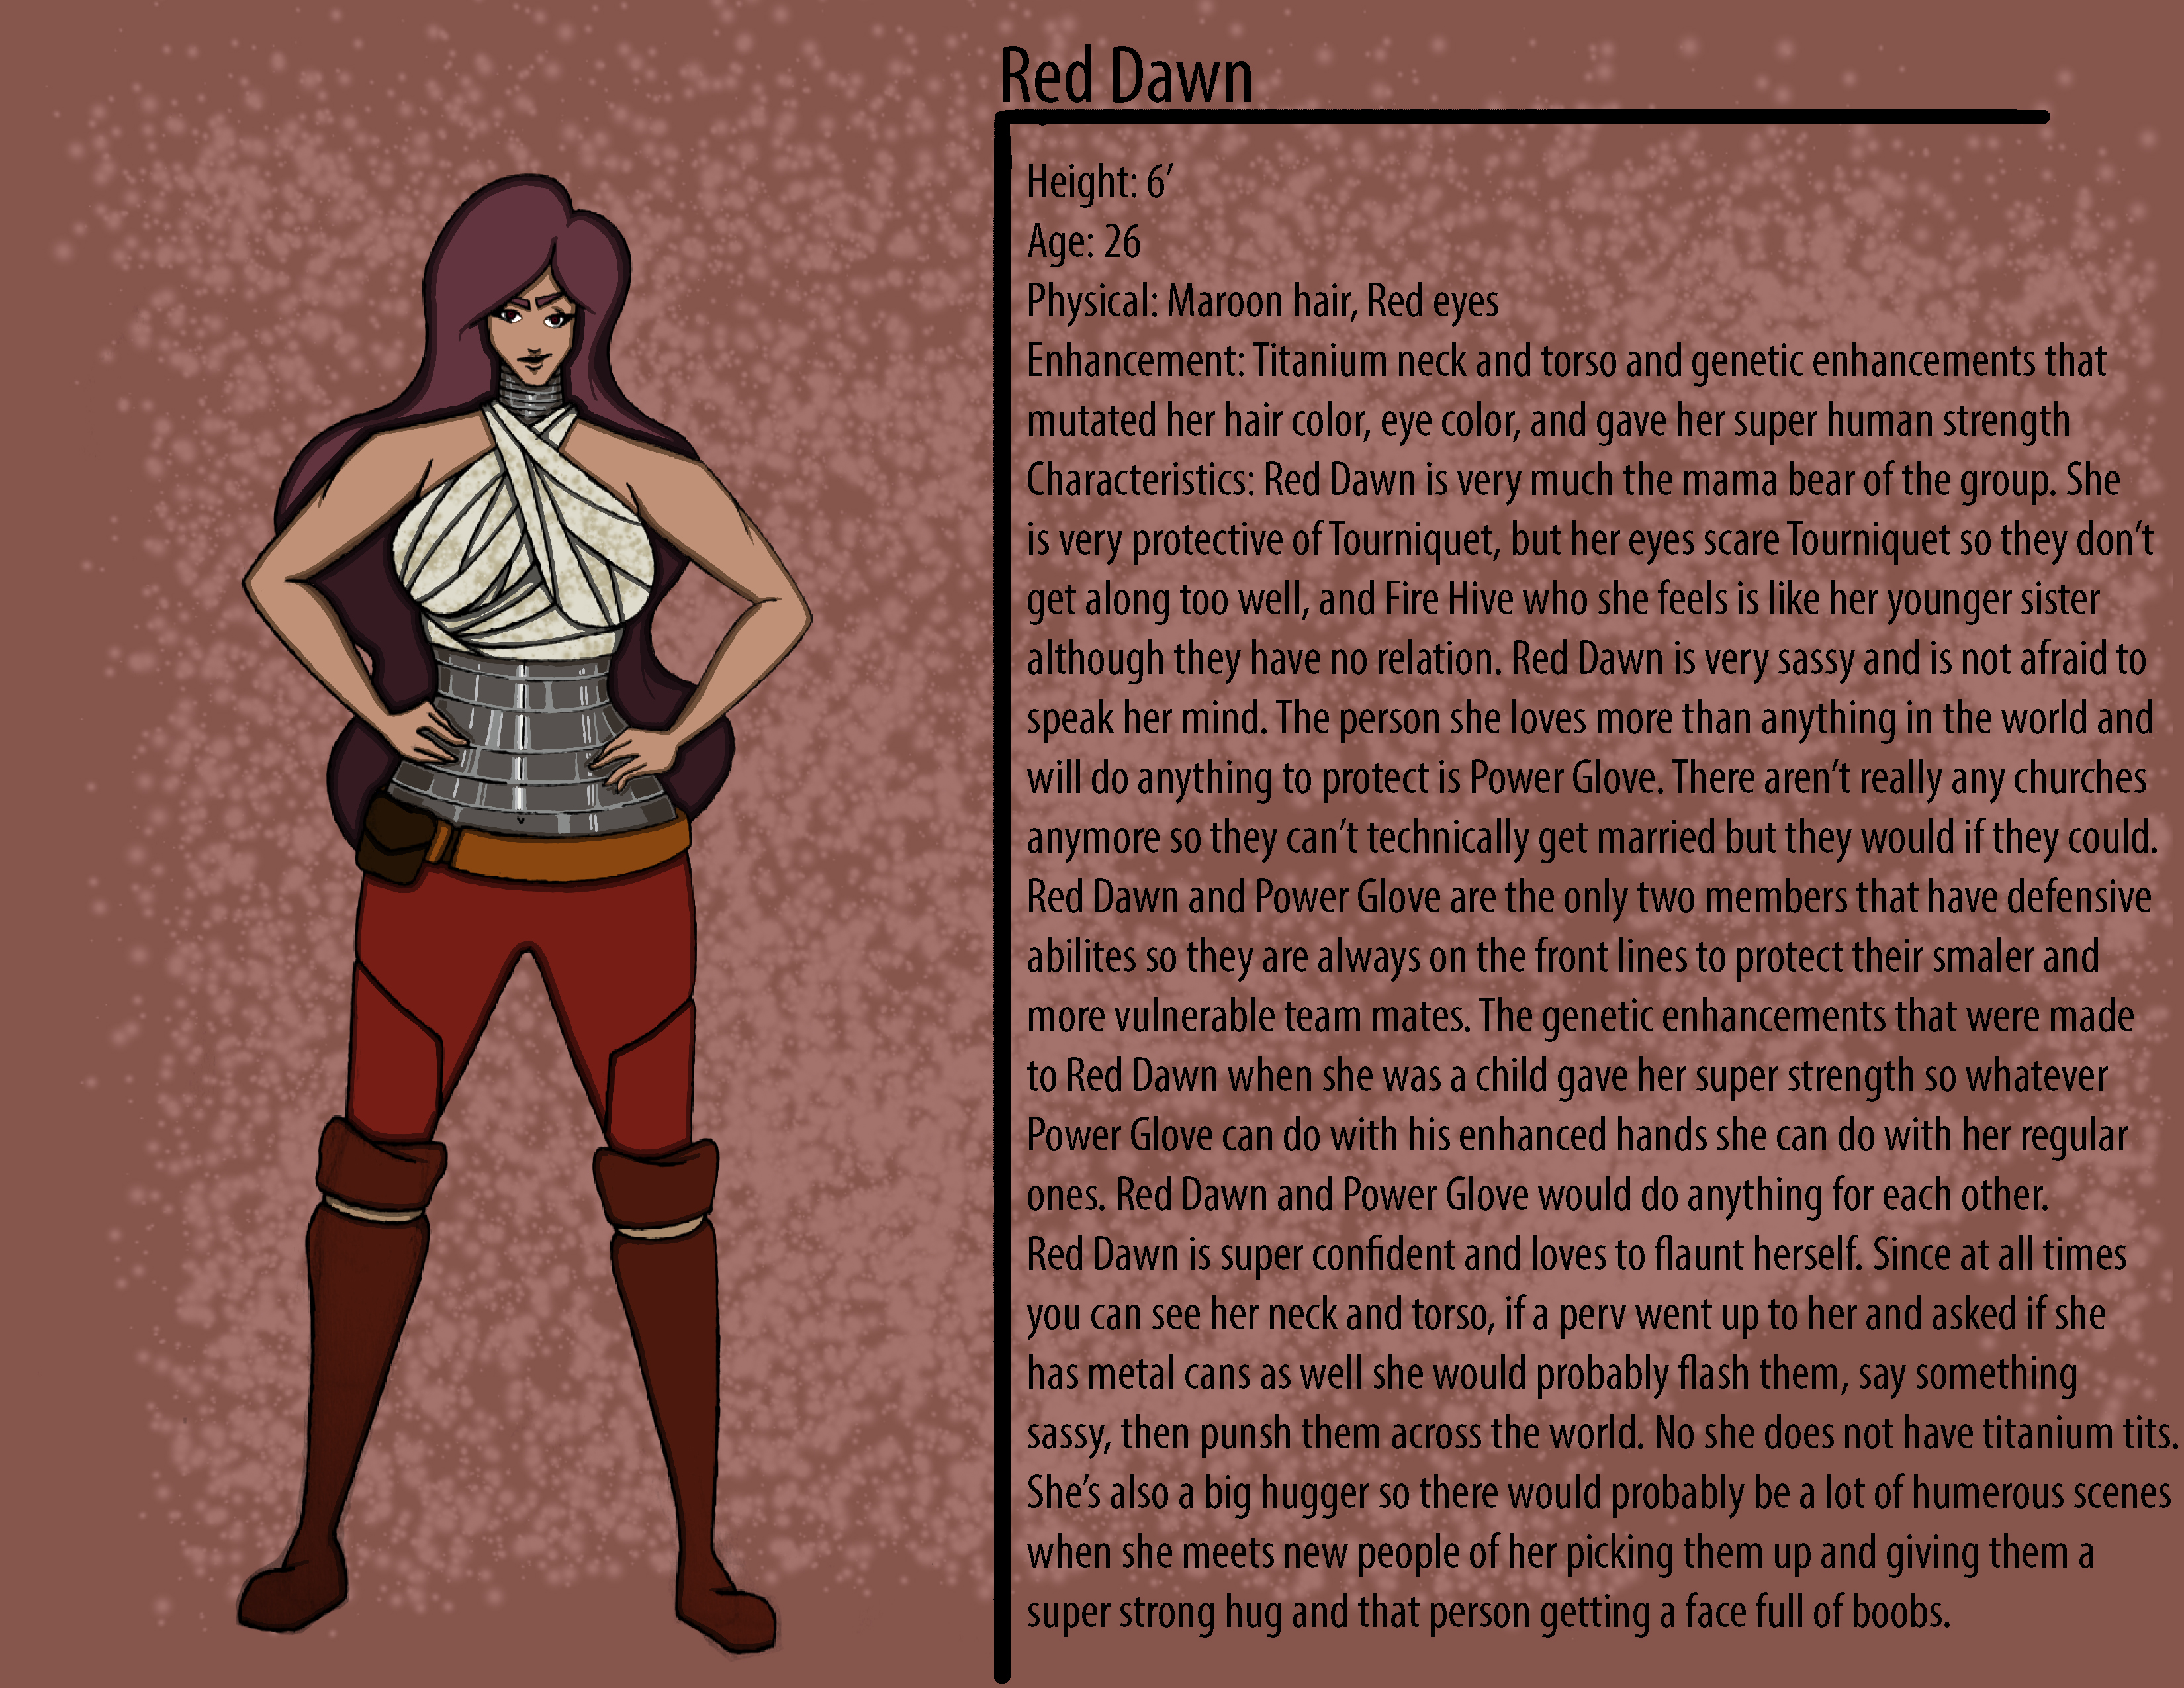 Red Dawn Character Description